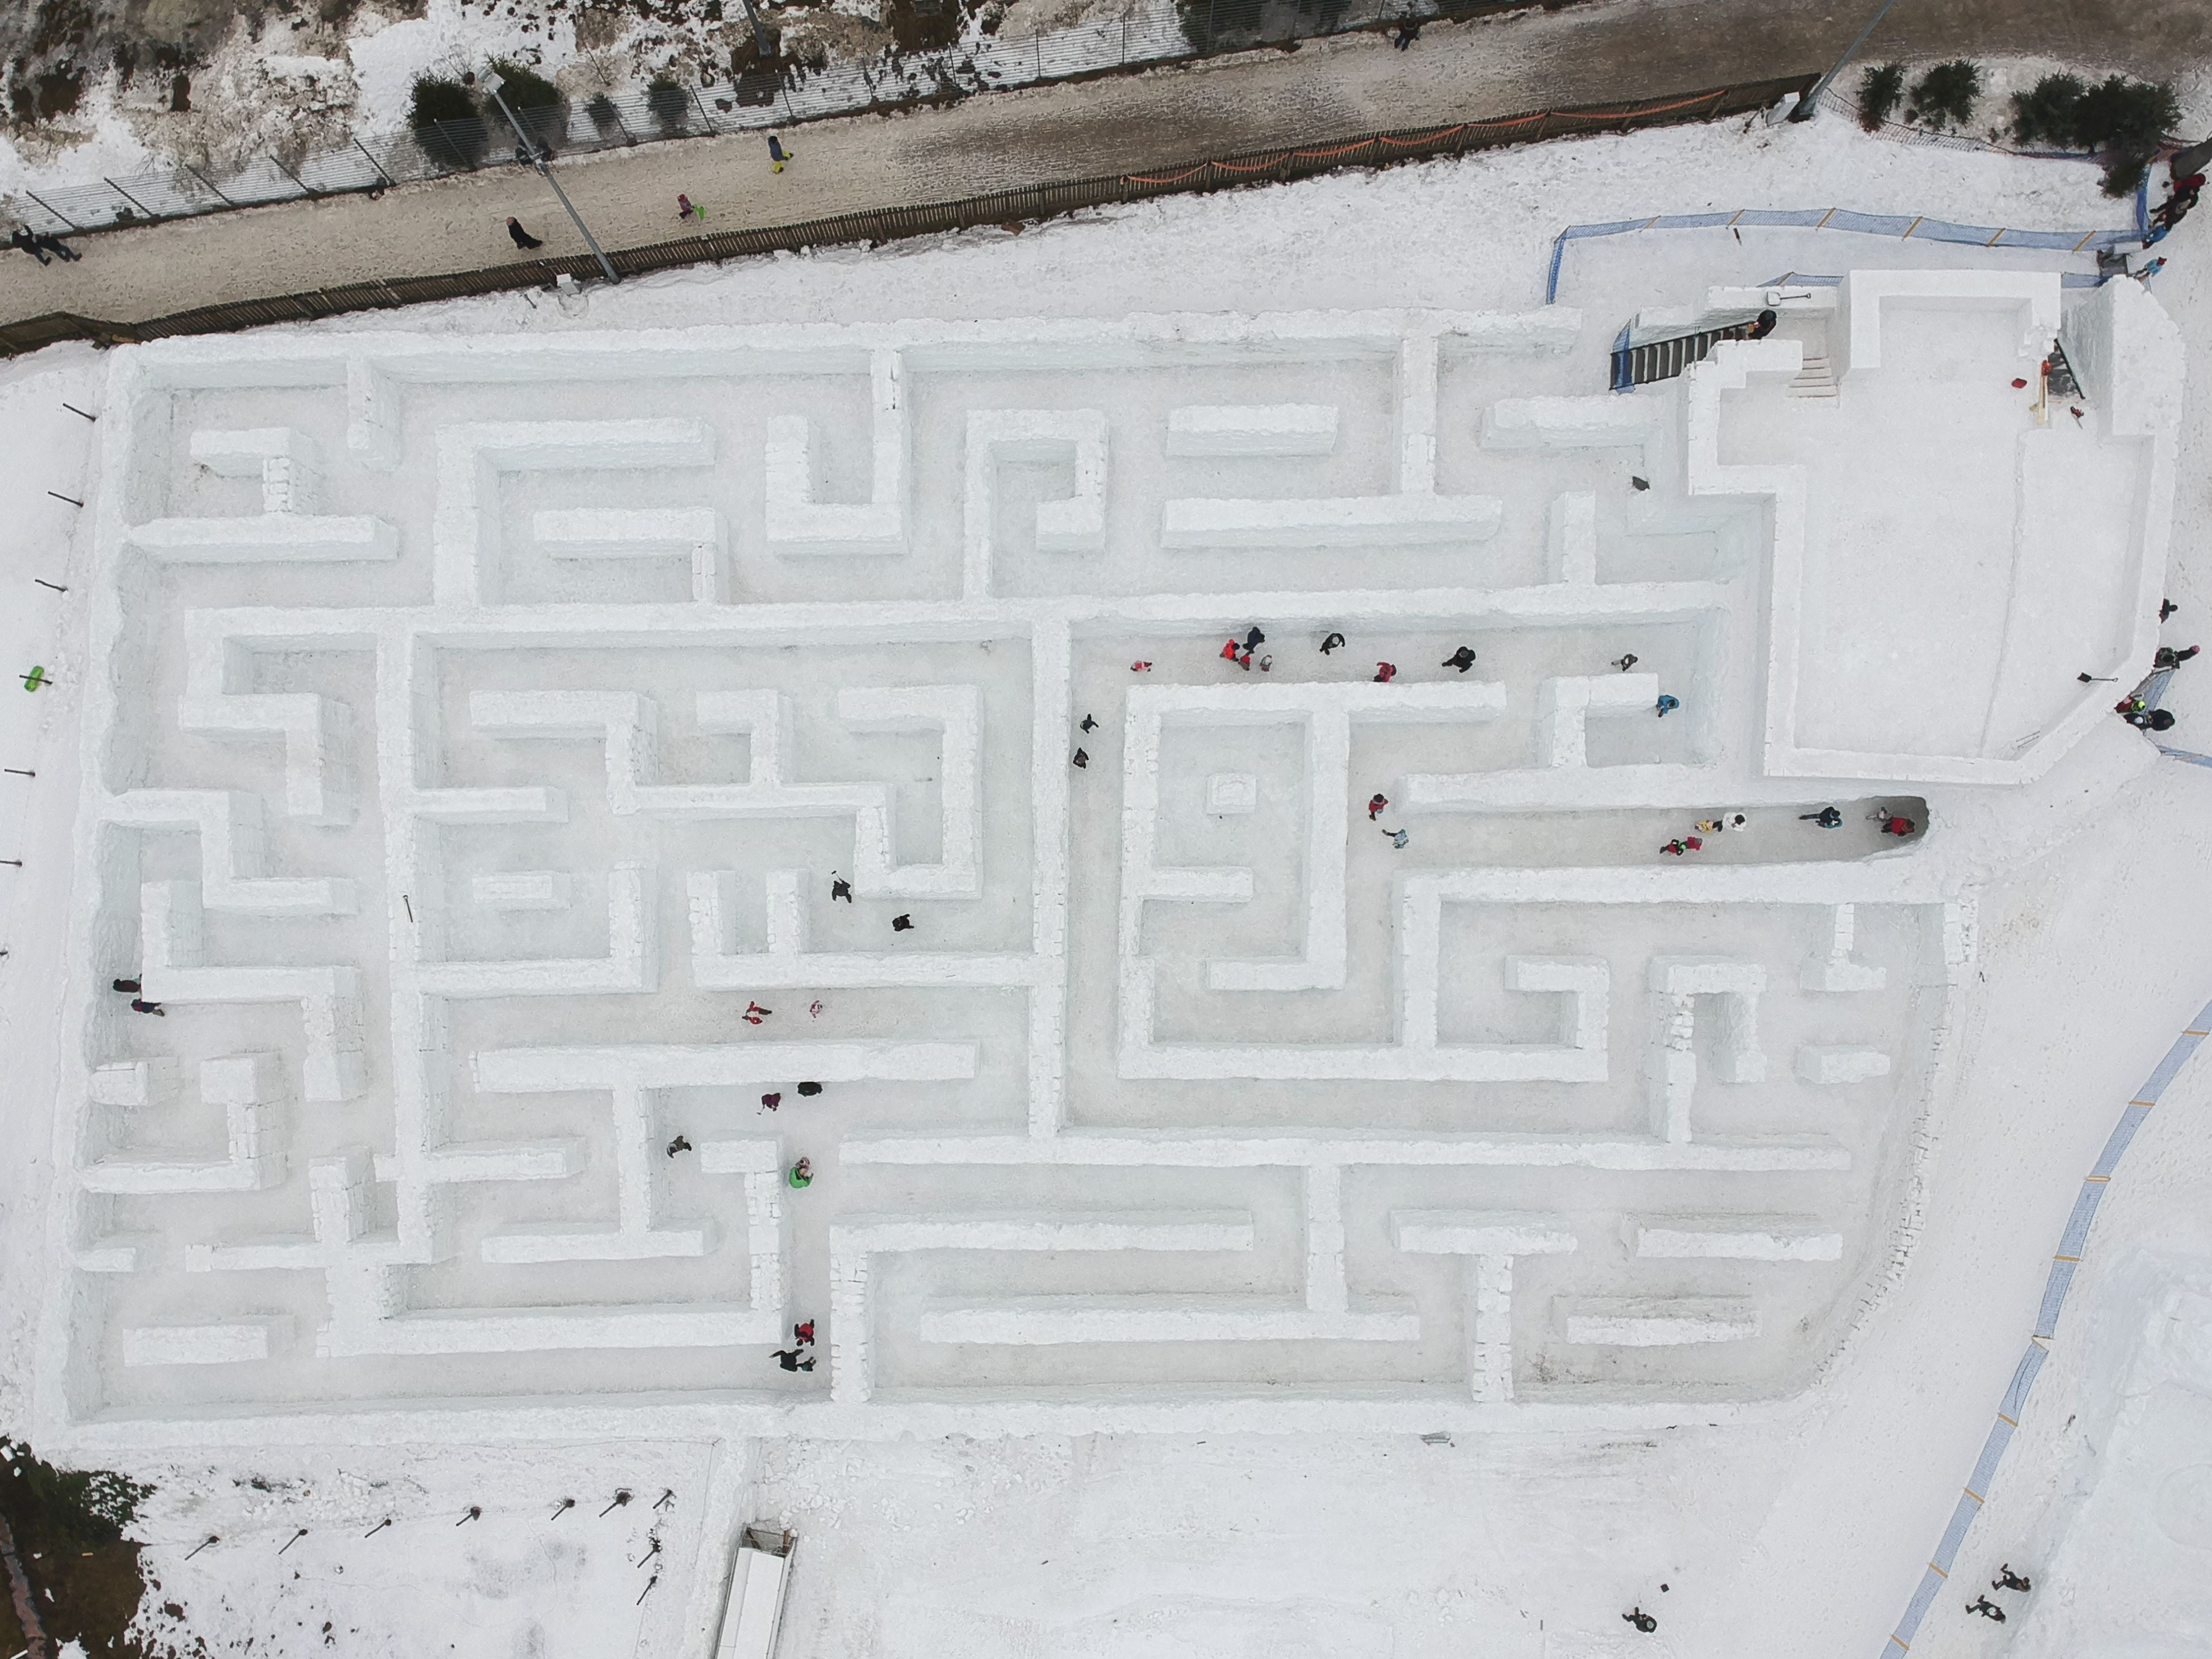 Slide 52 of 73: ZAKOPANE, POLAND JANUARY 11 : A drone view of visitors trying to find their way through the biggest snow maze of the world in Zakopane, Poland, January 11, 2018. The snow maze idea was created for the first time in the winter season of 2015/2016. Maze covers an area of 2500 square meters and it is considered as the biggest snow maze in the world. This season, the organization increased the size to 3000 square meters keeping its title for the biggest snow maze in the world.